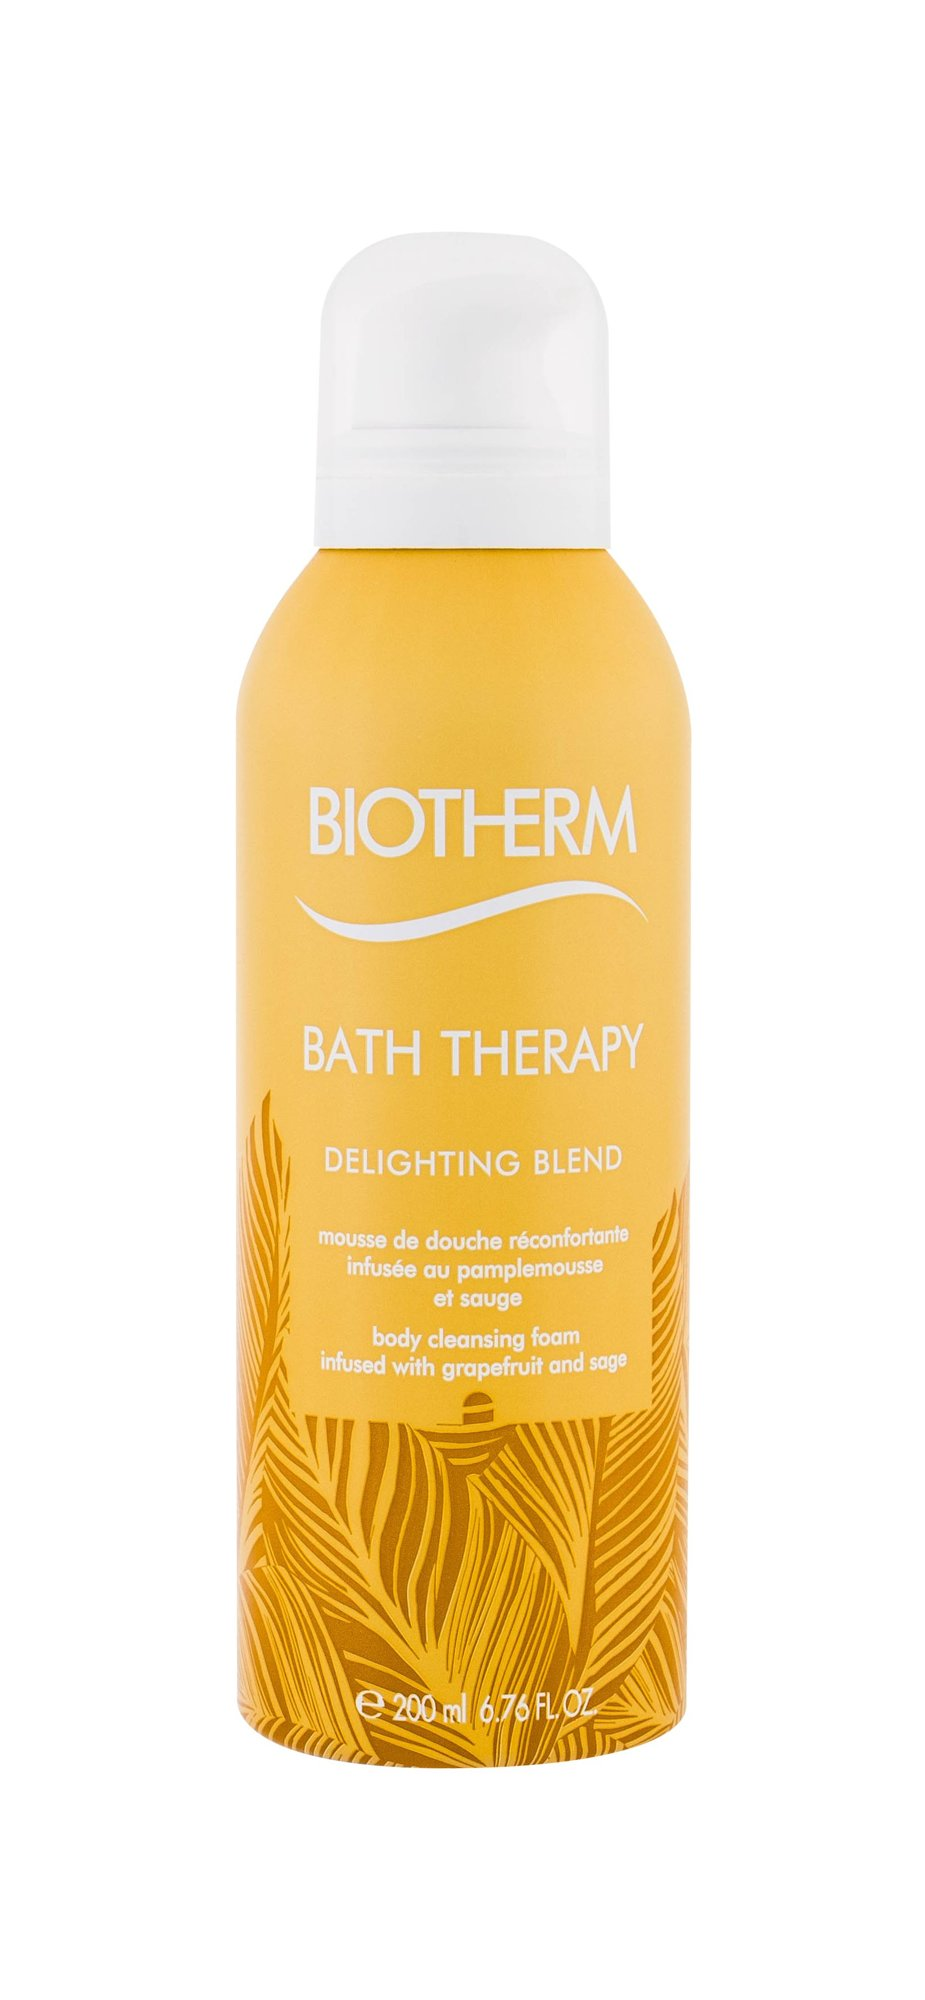 Biotherm Bath Therapy Shower Foam 200ml  Delighting Blend